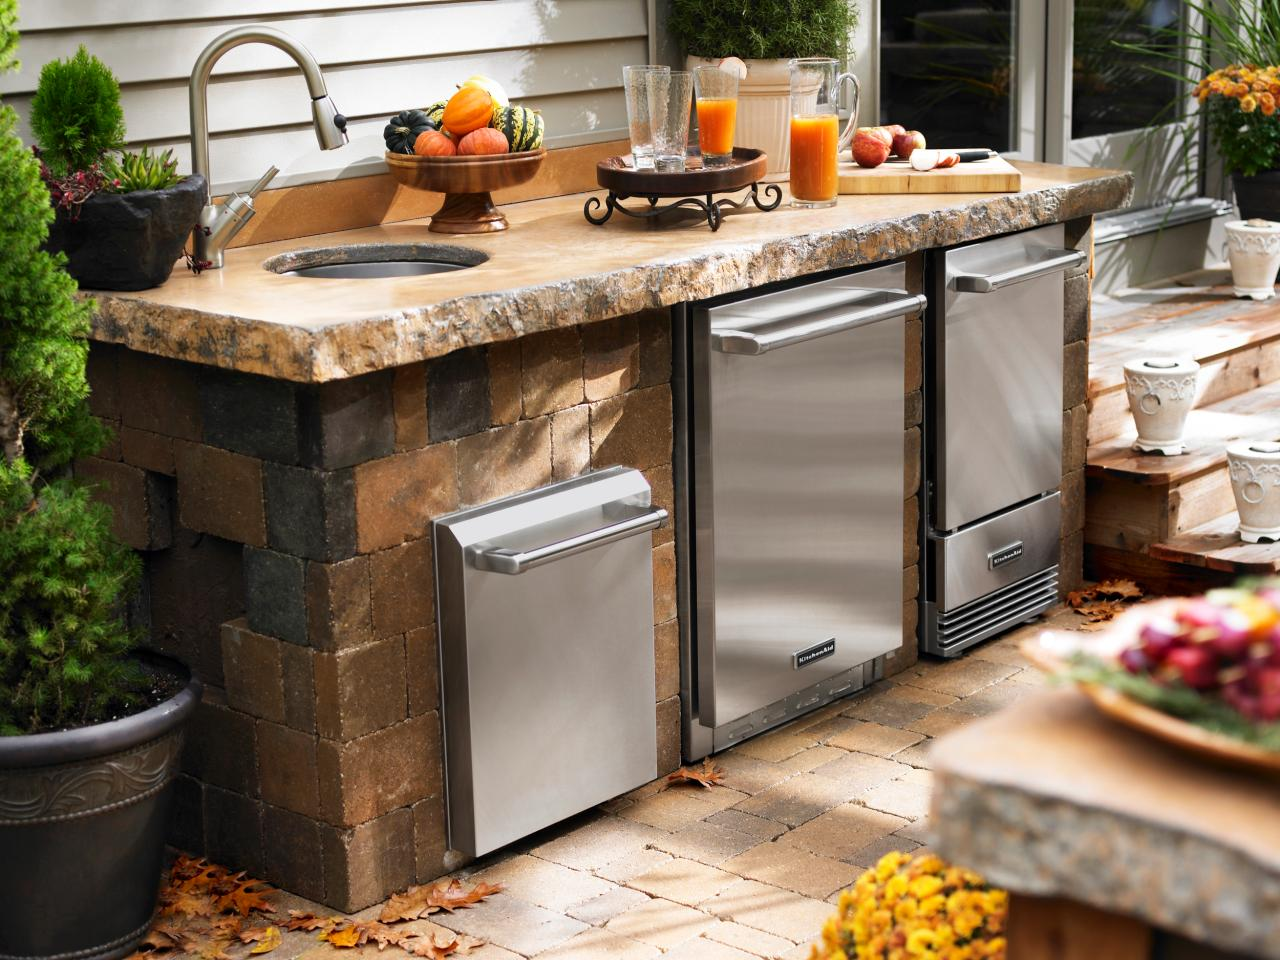 beautiful Designs For Outdoor Kitchens #5: Outdoor Kitchen Designs for Ideas and Inspiration